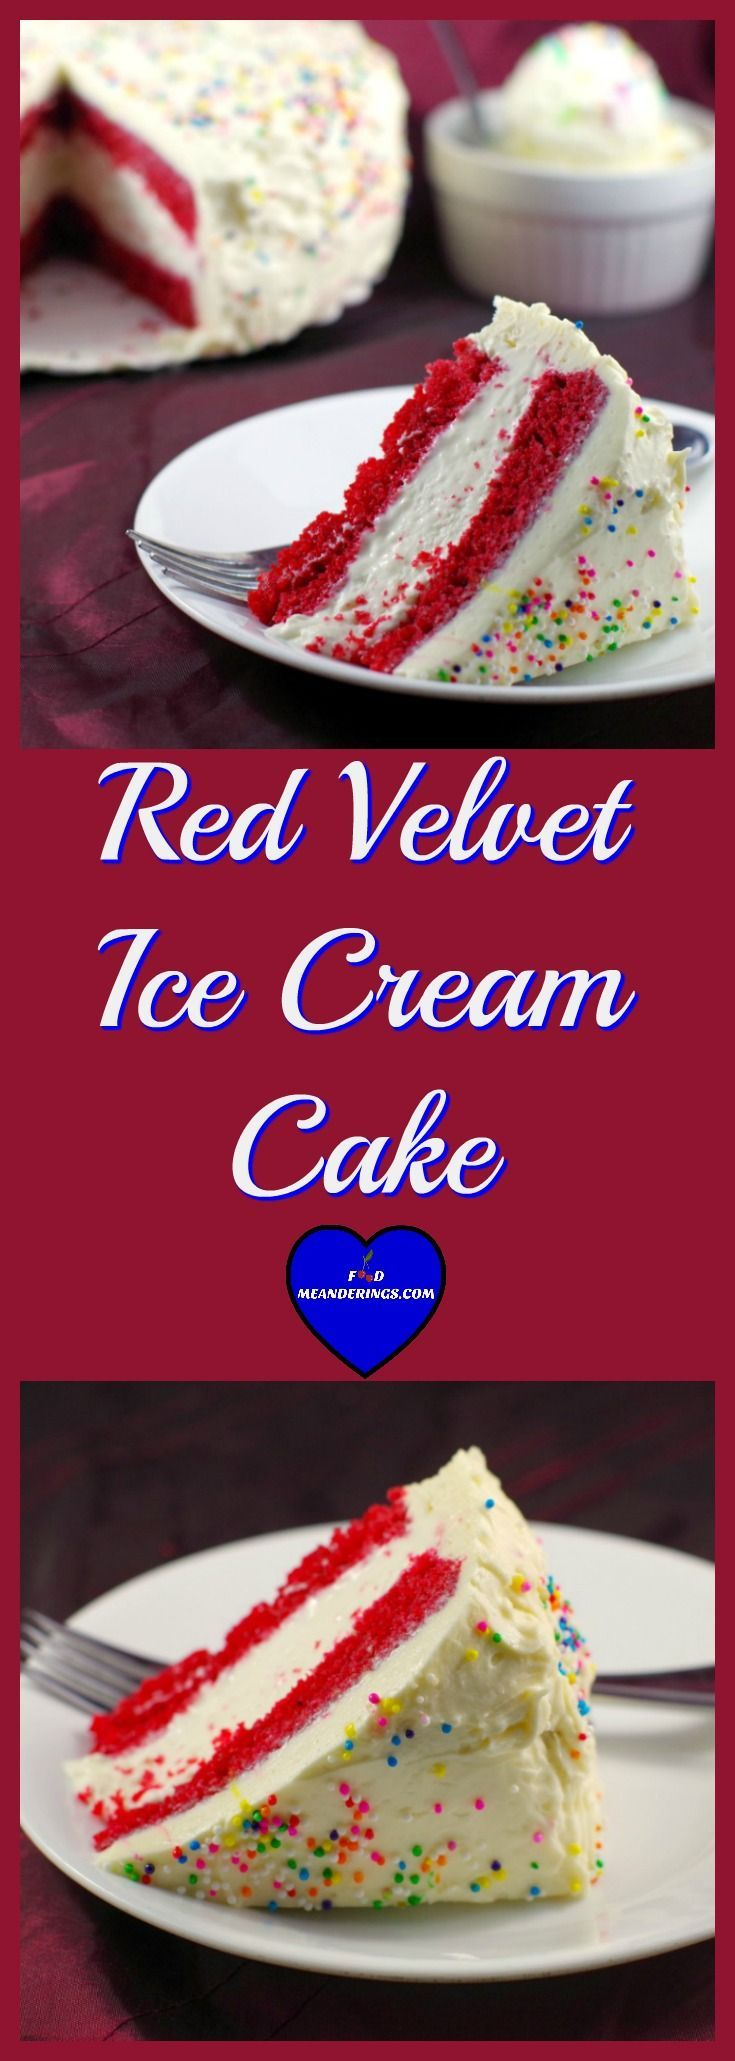 This red velvet cake has layers of pillowy, fluffy and light Red velvet cake cushioning an easy no churn cream cheese ice cream filling, all smothered in dreamy creamy white chocolate cream cheese icing.